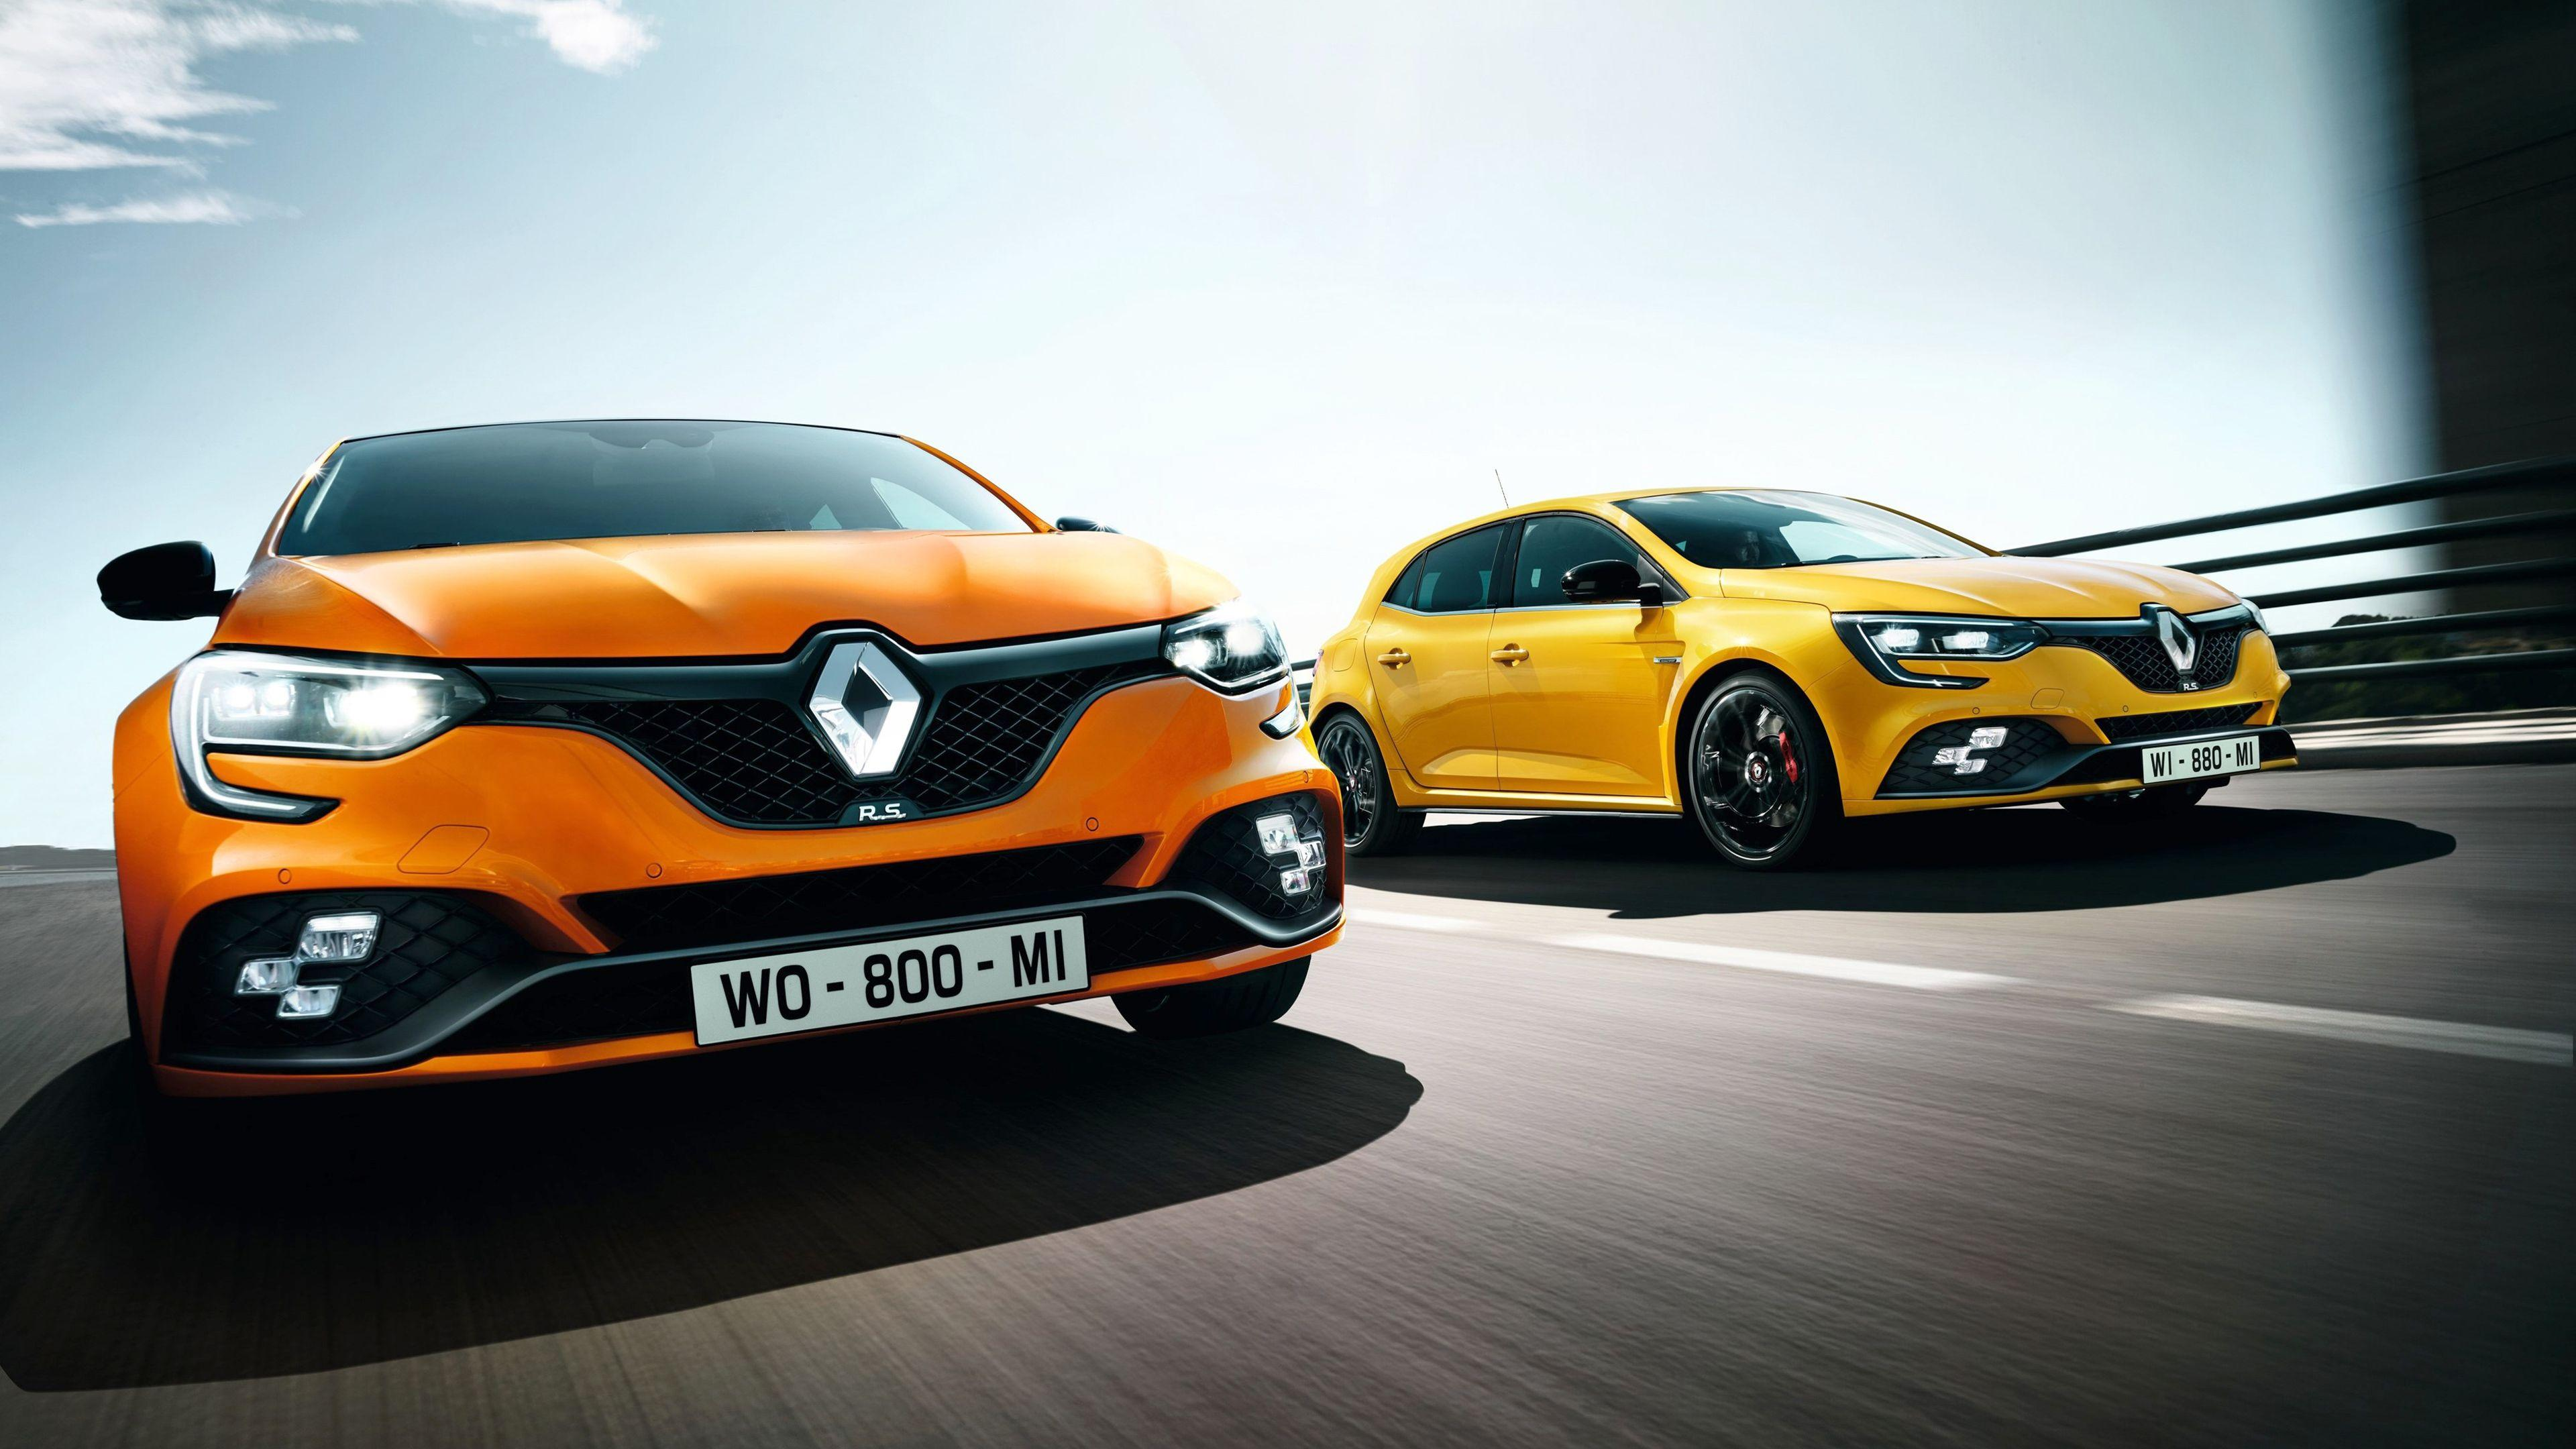 2018 Renault Megane RS 4K 5 Wallpapers